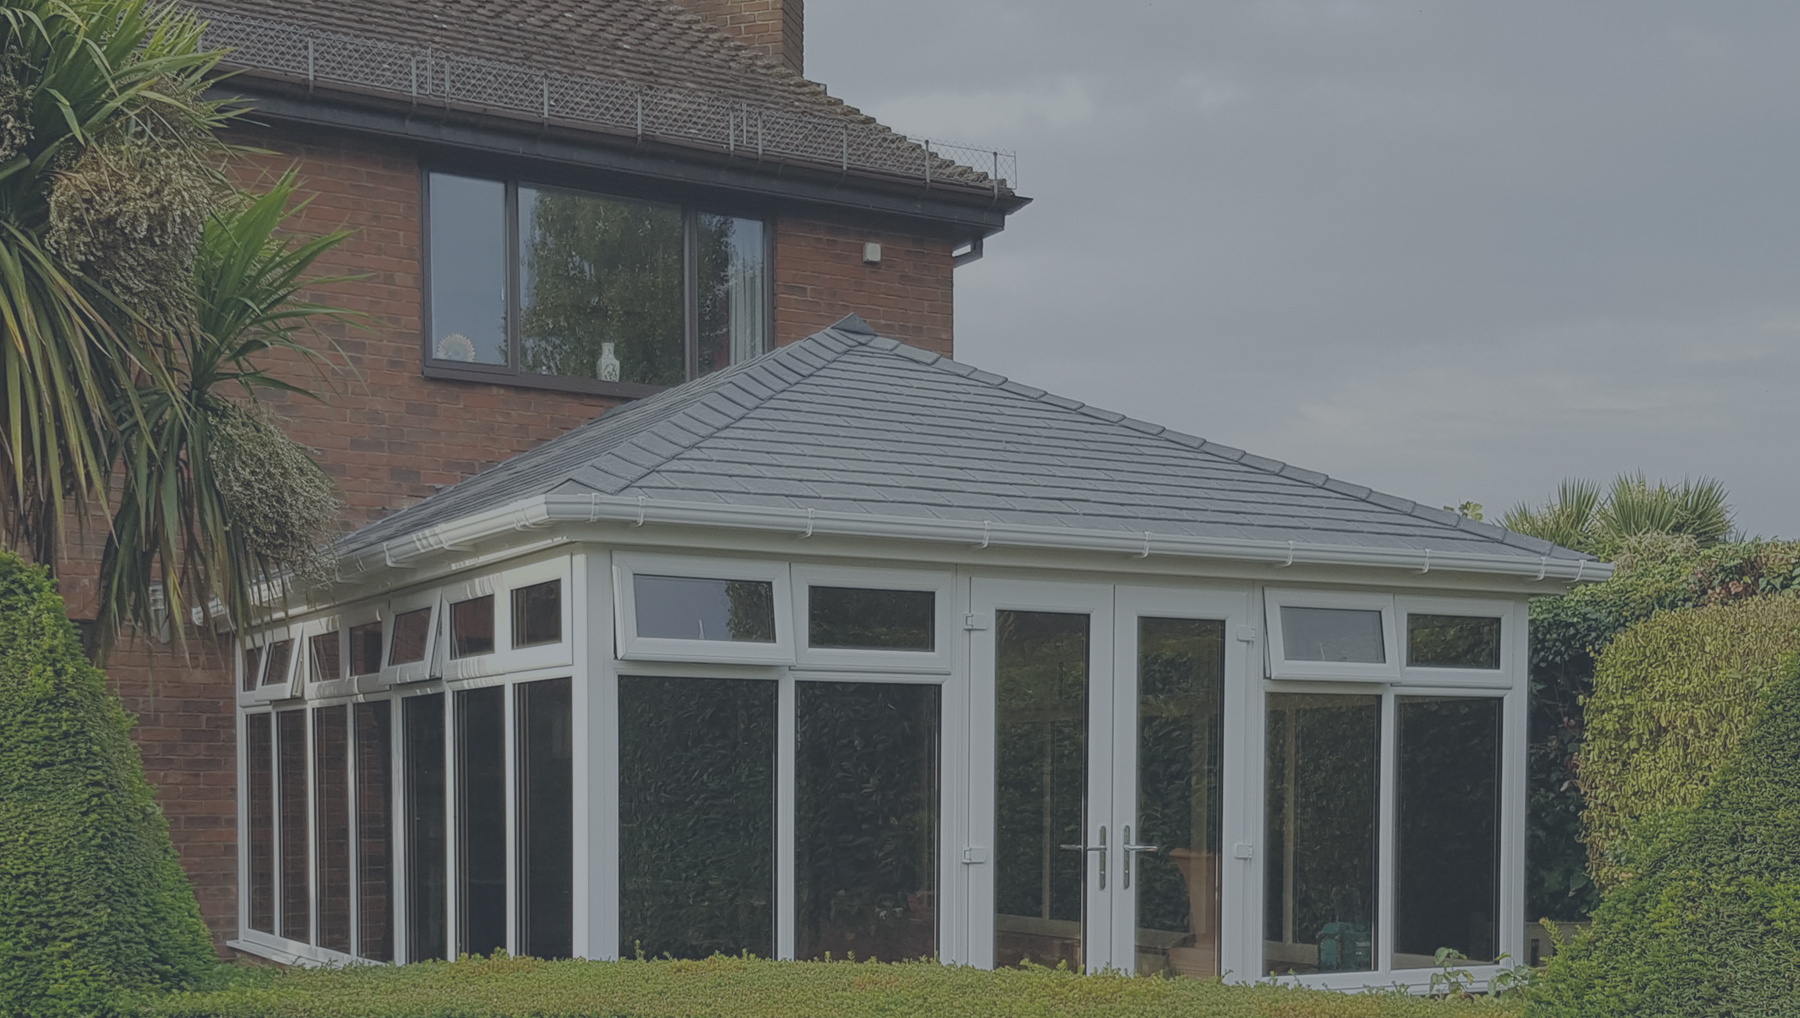 Narborough Fascias Specialists In Full Replacement Of Soffits And Fascias In Leicestershire